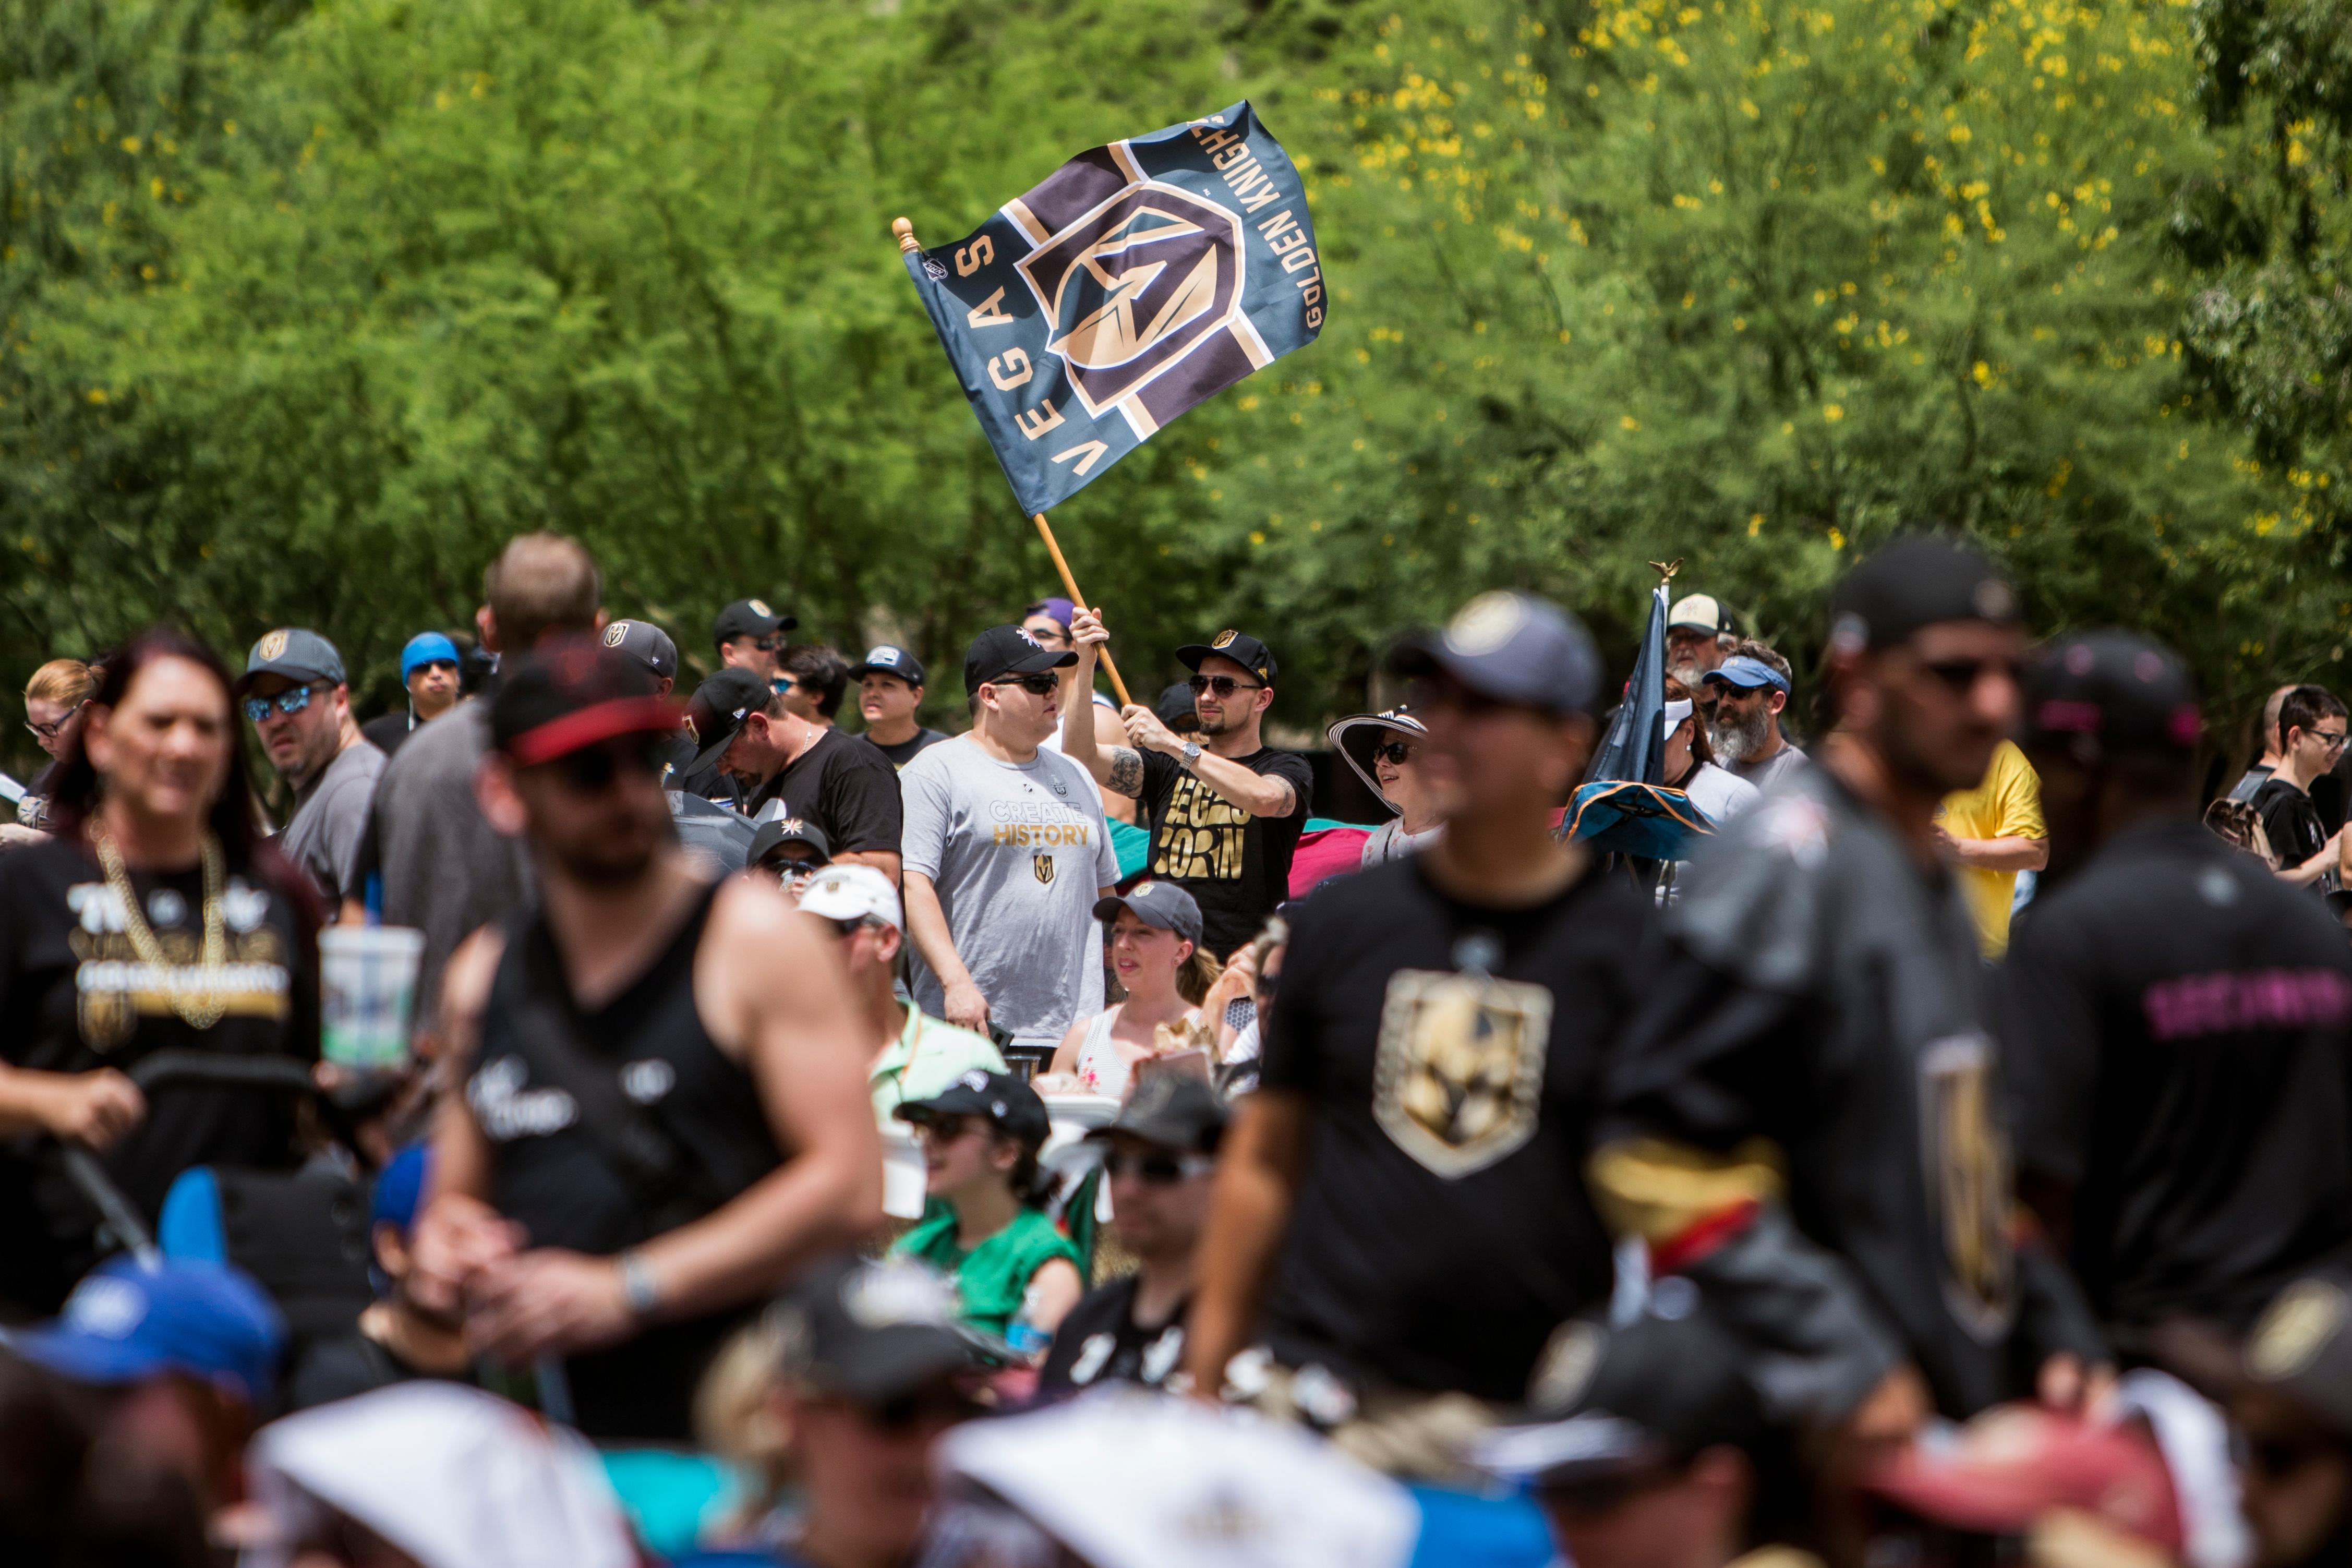 Vegas Golden Knights fans prepare for their team to take on the Winnipeg Jets during a Game 5 watch party Sunday May 20, 2018 at Toshiba Plaza outside T-Mobile Arena. The Golden Knights defeated the Winnipeg Jets, advancing to the Stanley Cup Final. CREDIT: Joe Buglewicz/Las Vegas News Bureau